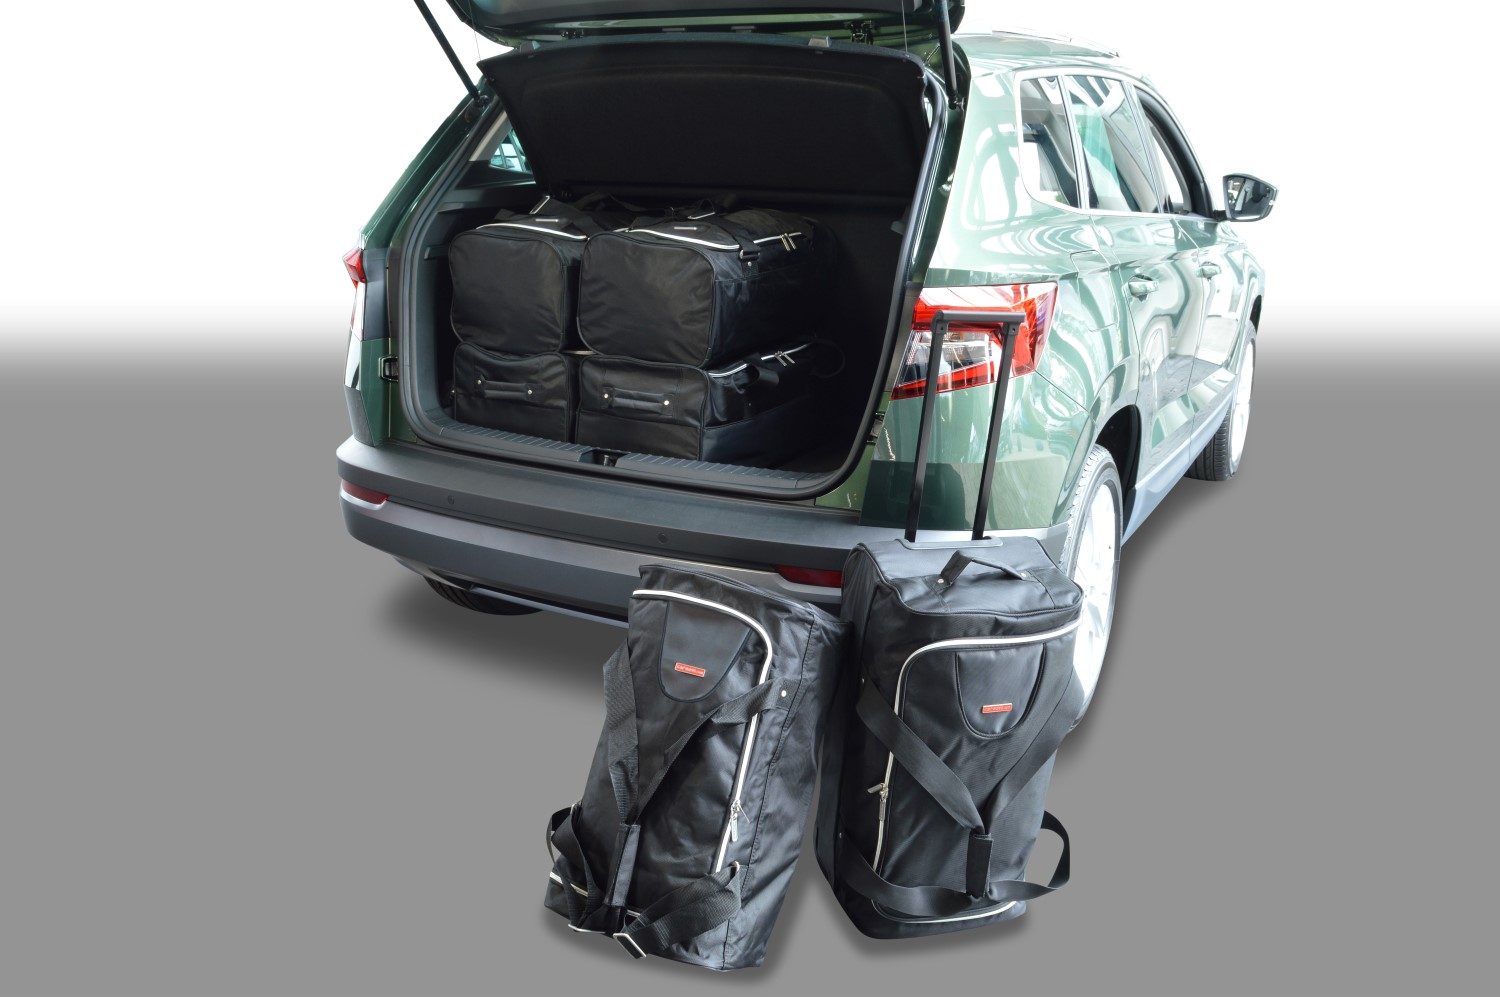 skoda karoq car travel bags car. Black Bedroom Furniture Sets. Home Design Ideas